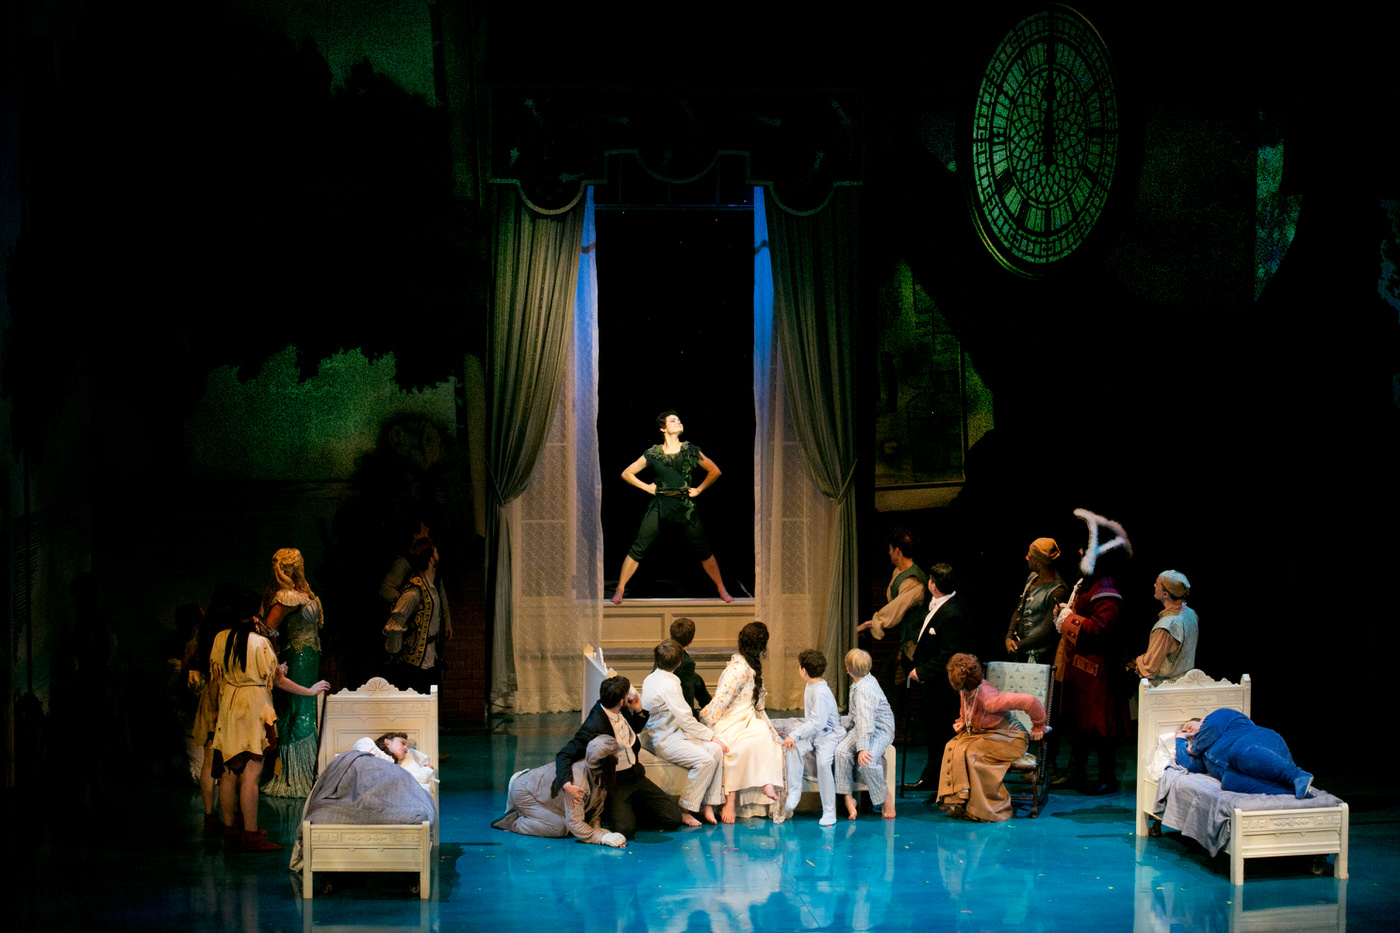 finding neverland at the art recasts the story of peter pan and the peter pan myth reinvented